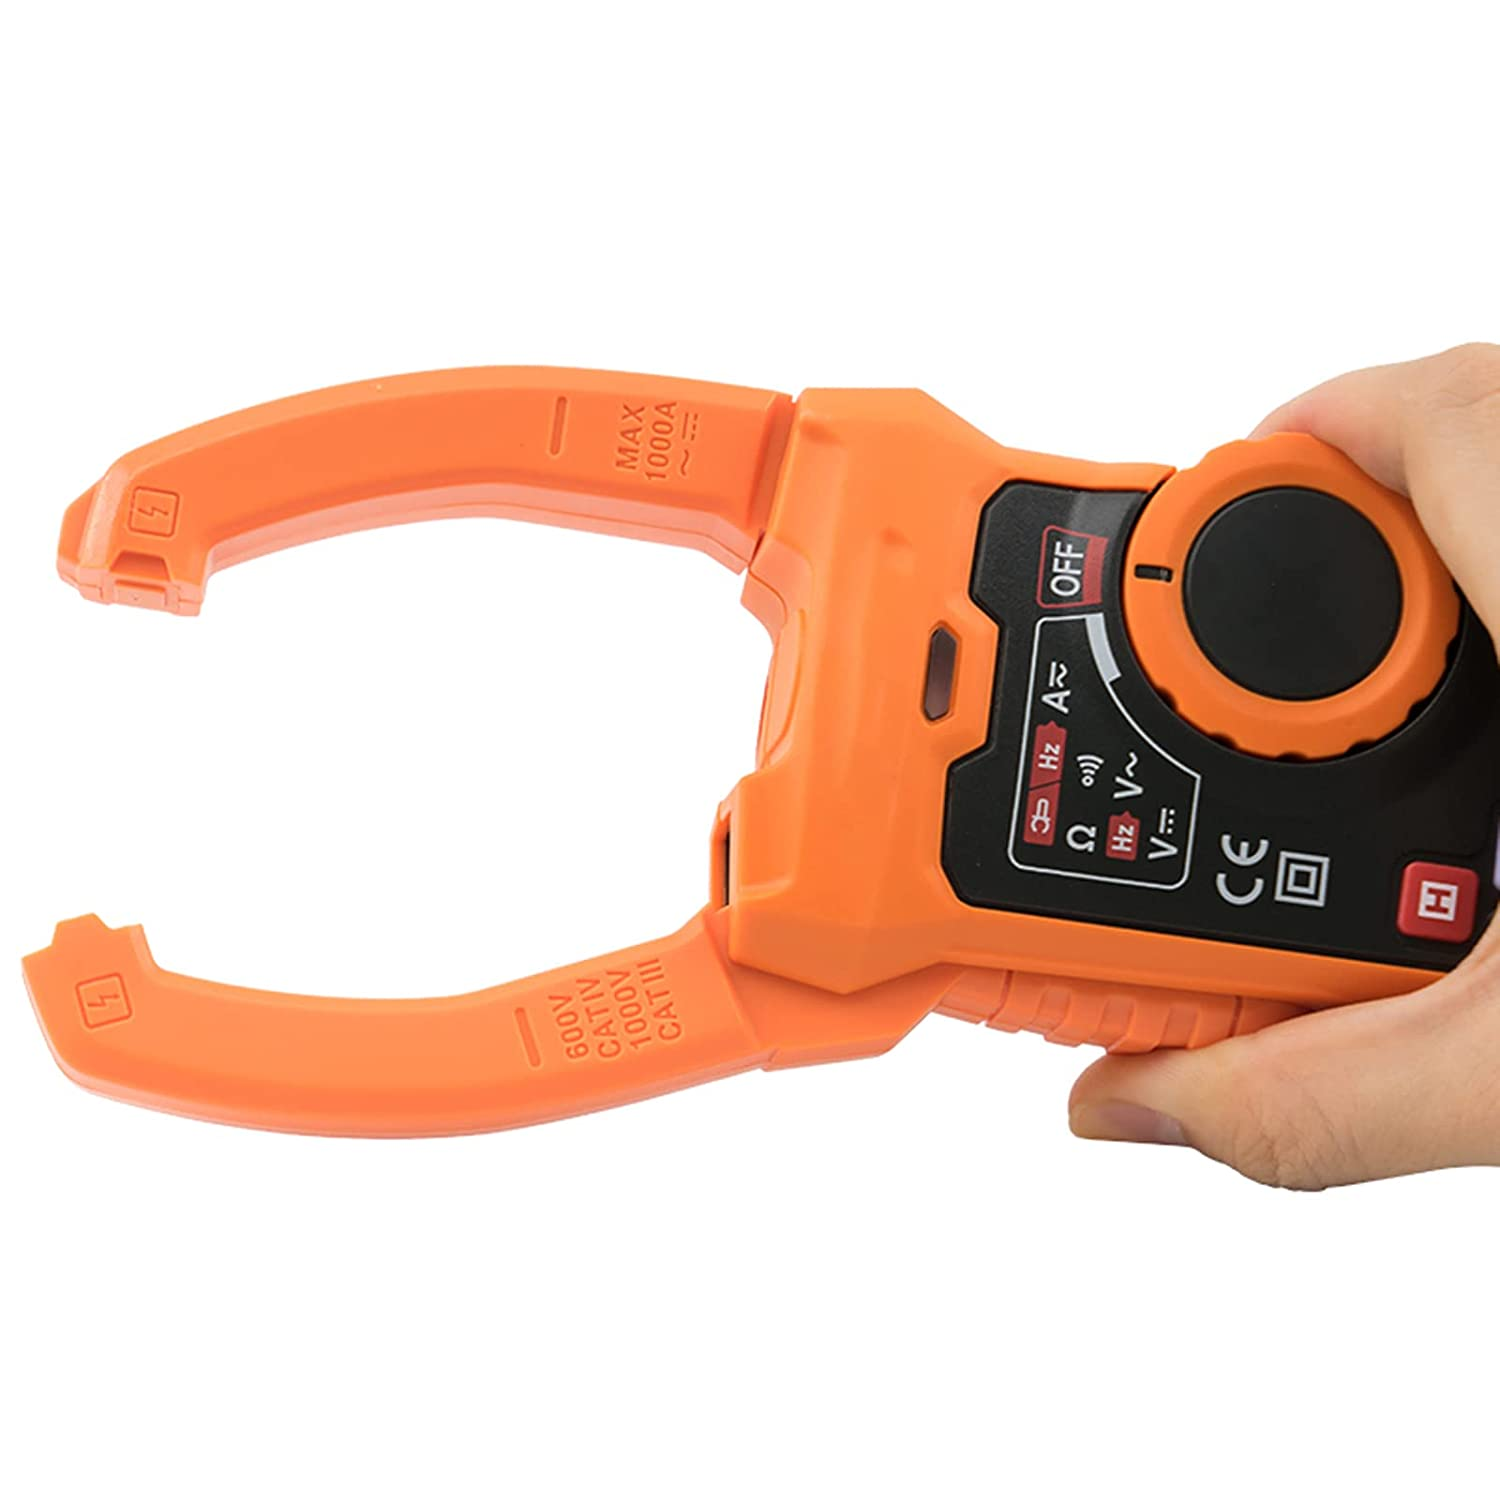 Wowlela PM2128S Ac Dc Current Handheld Non-Contact Digital Excellence San Jose Mall Clamp